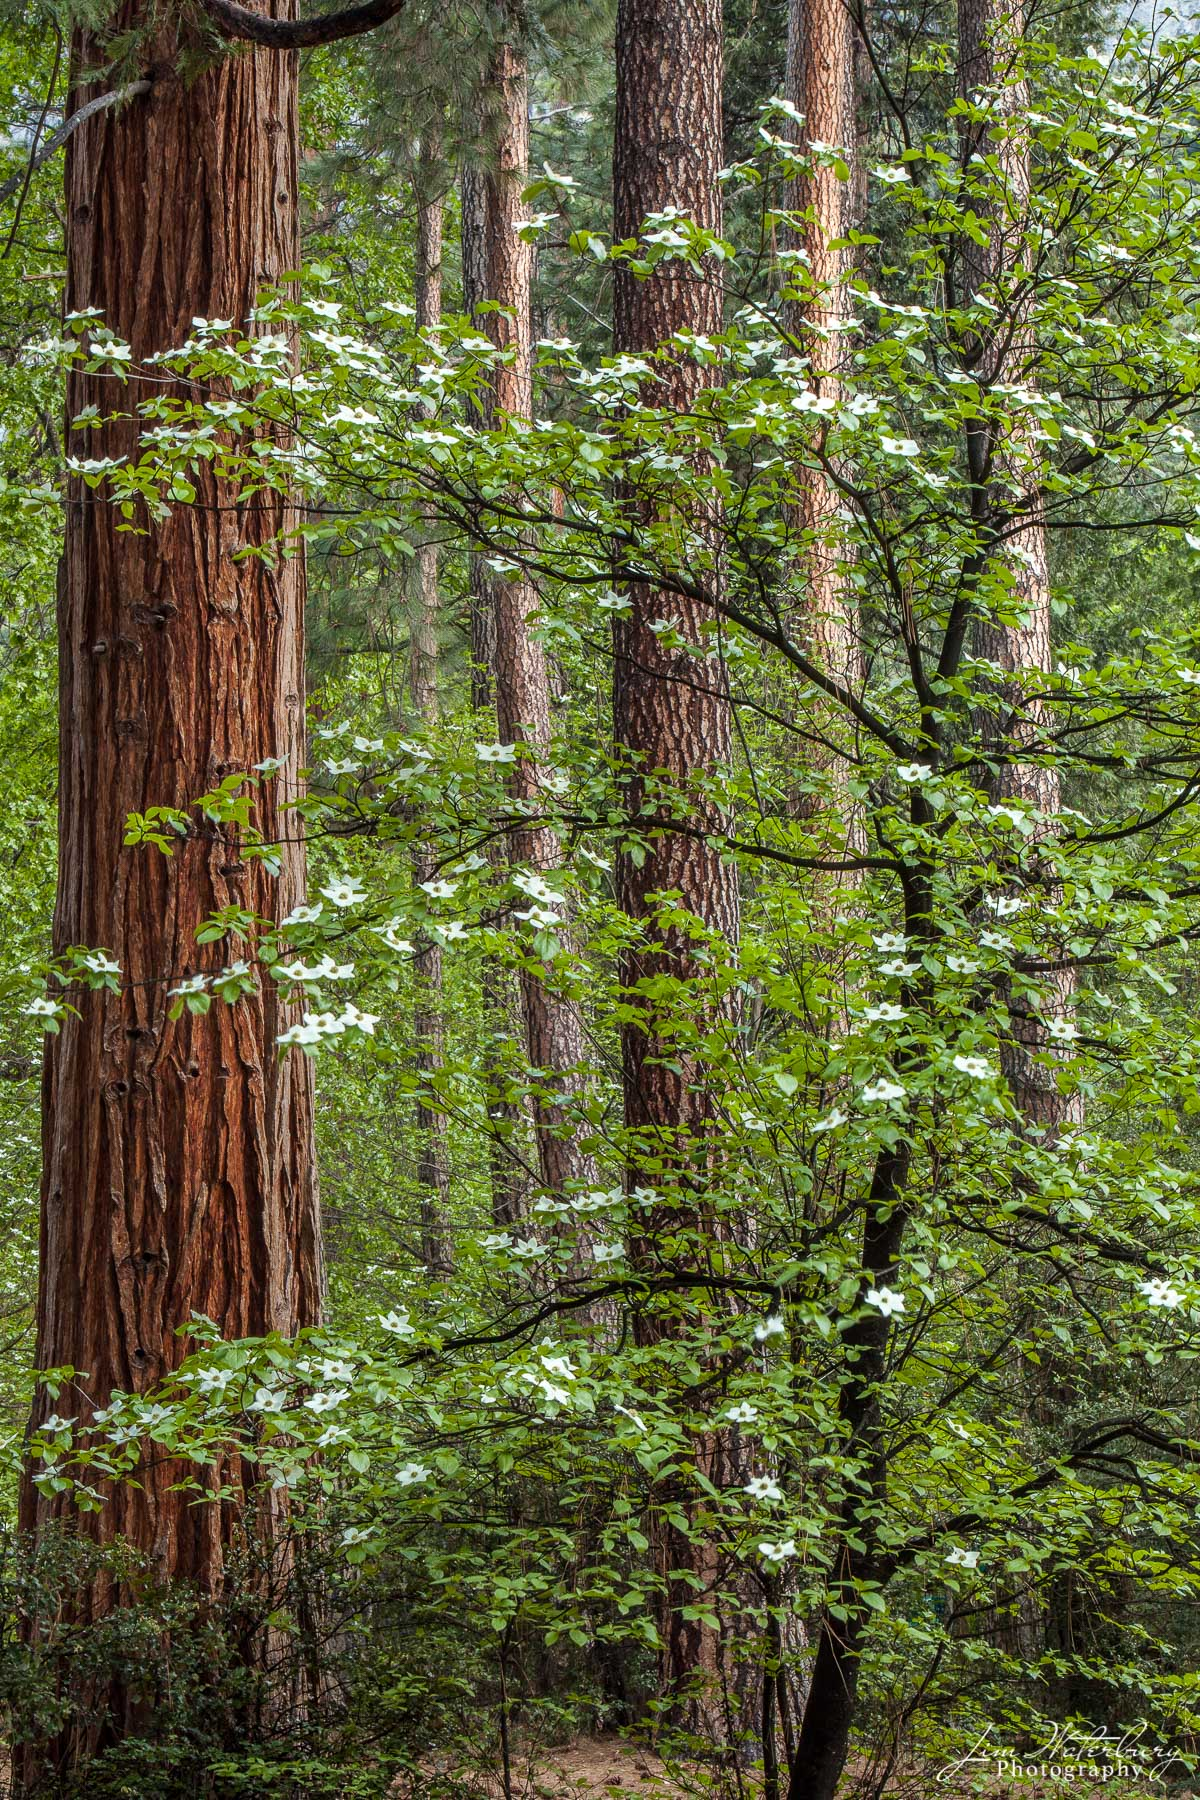 A forest of dogwood trees flower in spring on the grounds of the Ahwahnee Hotel in Yosemite Valley.